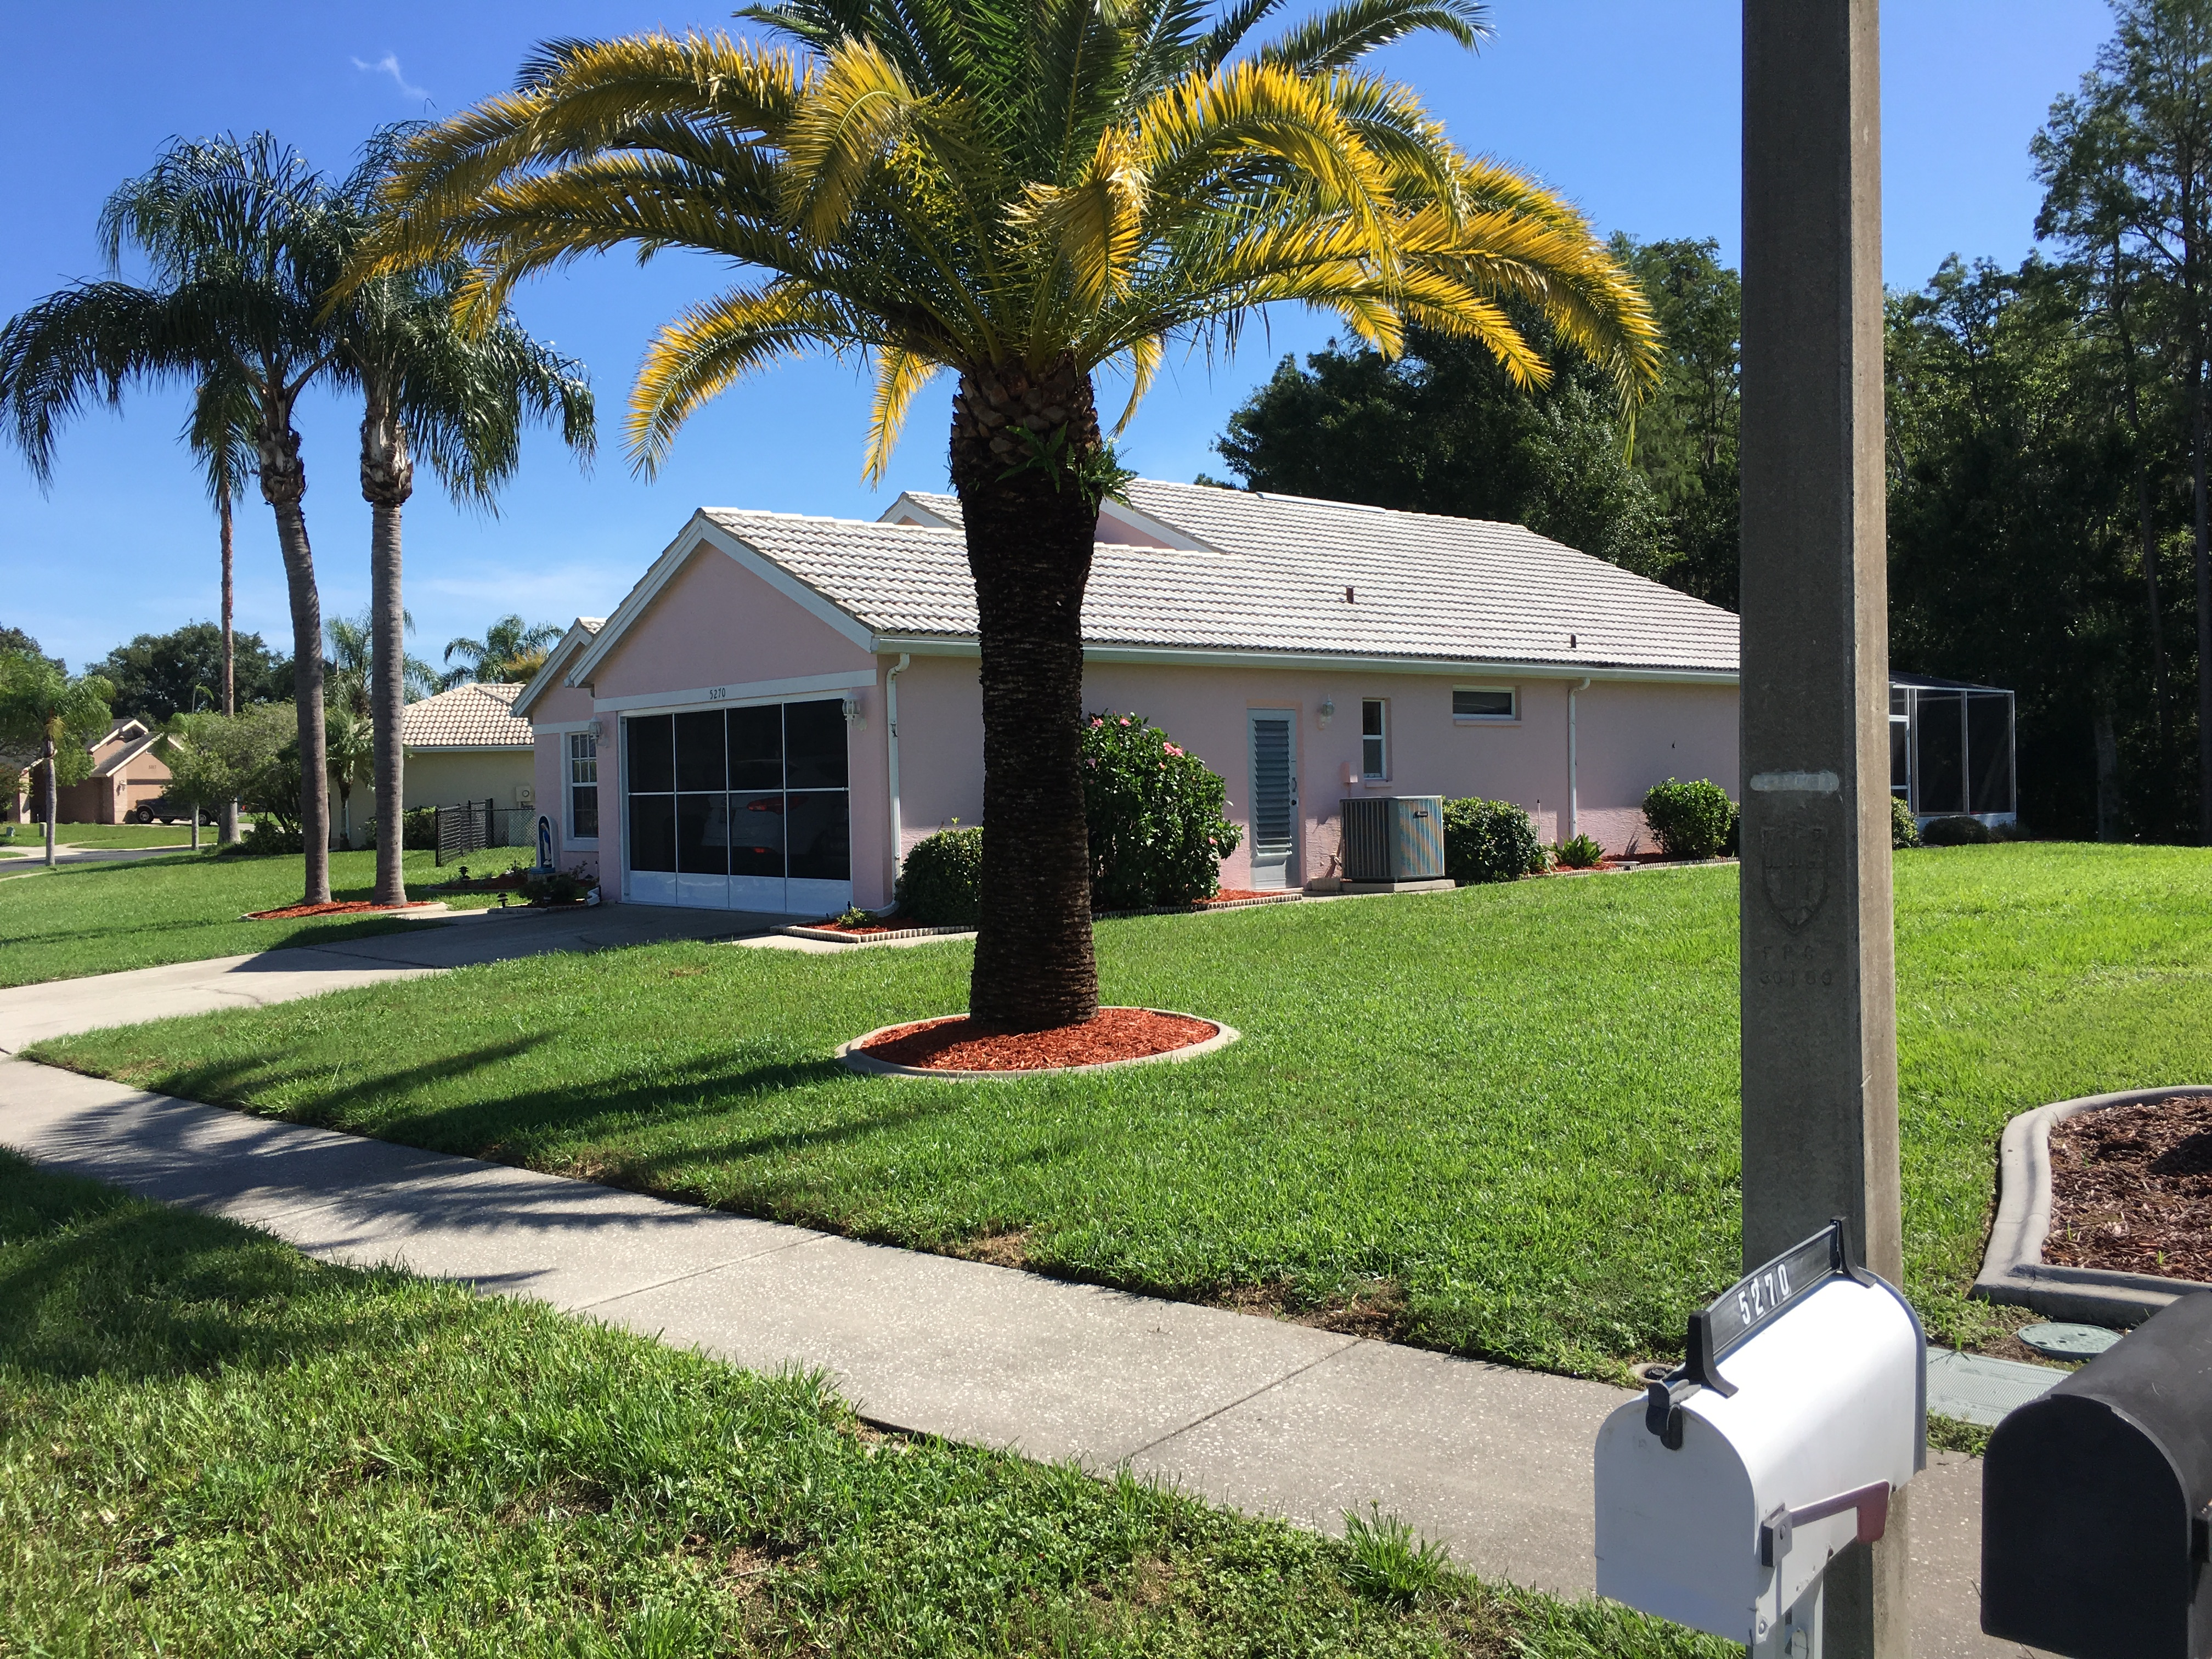 roof-cleaning-pressure-washing-new-port-richey.jpg